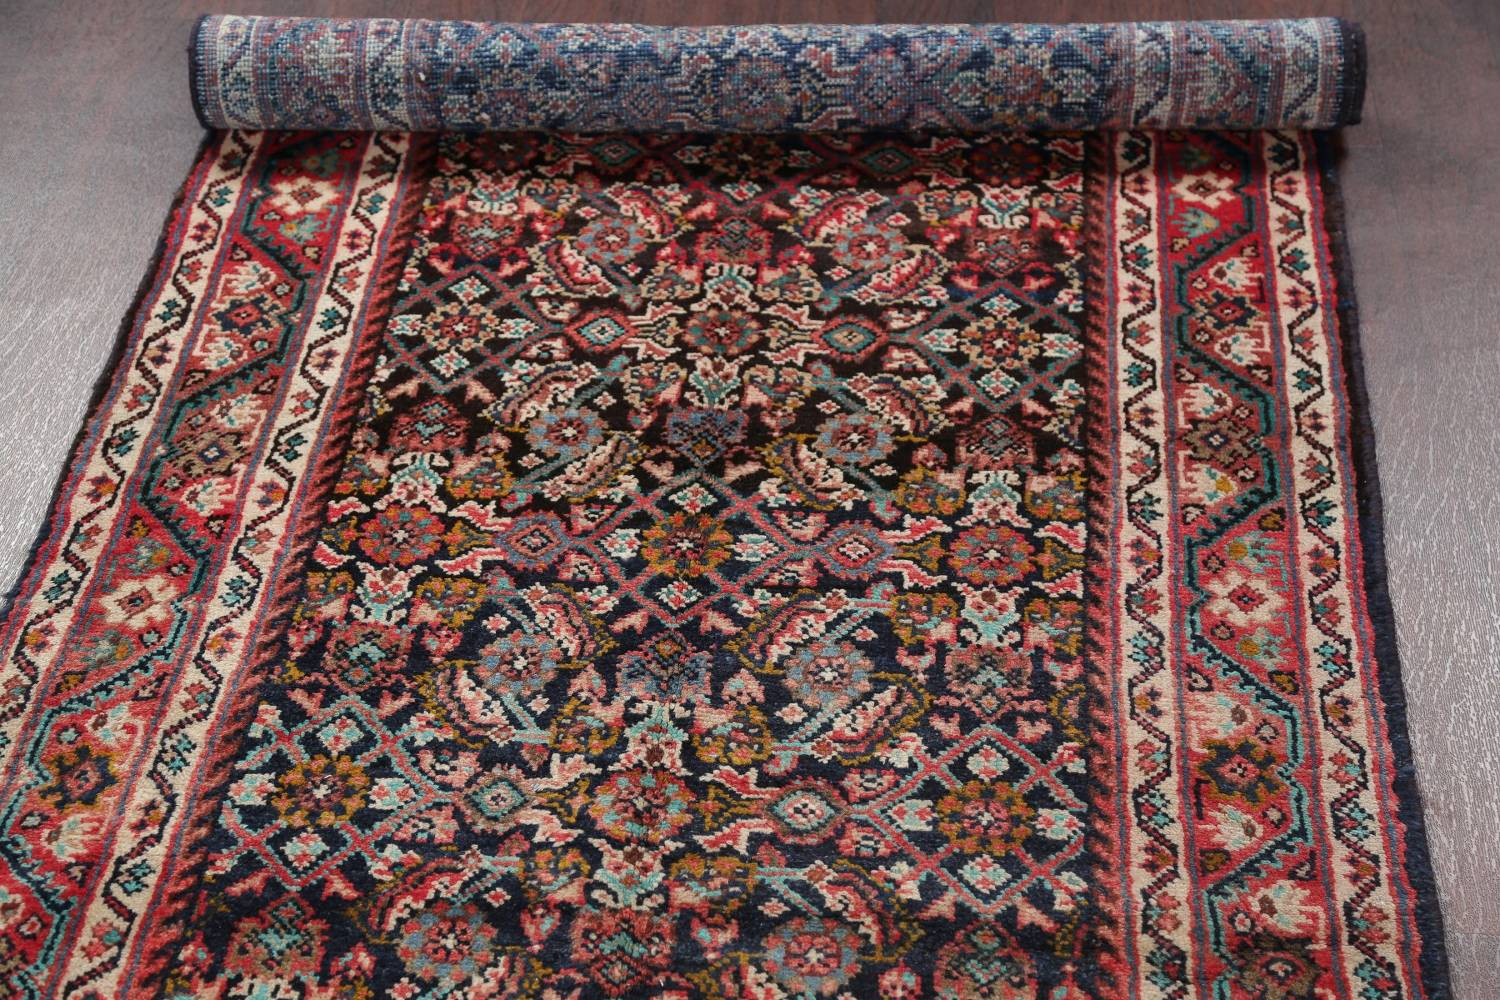 Antique Geometric Mahal Hamedan Persian Hand-Knotted 4x13 Runner Rug image 14